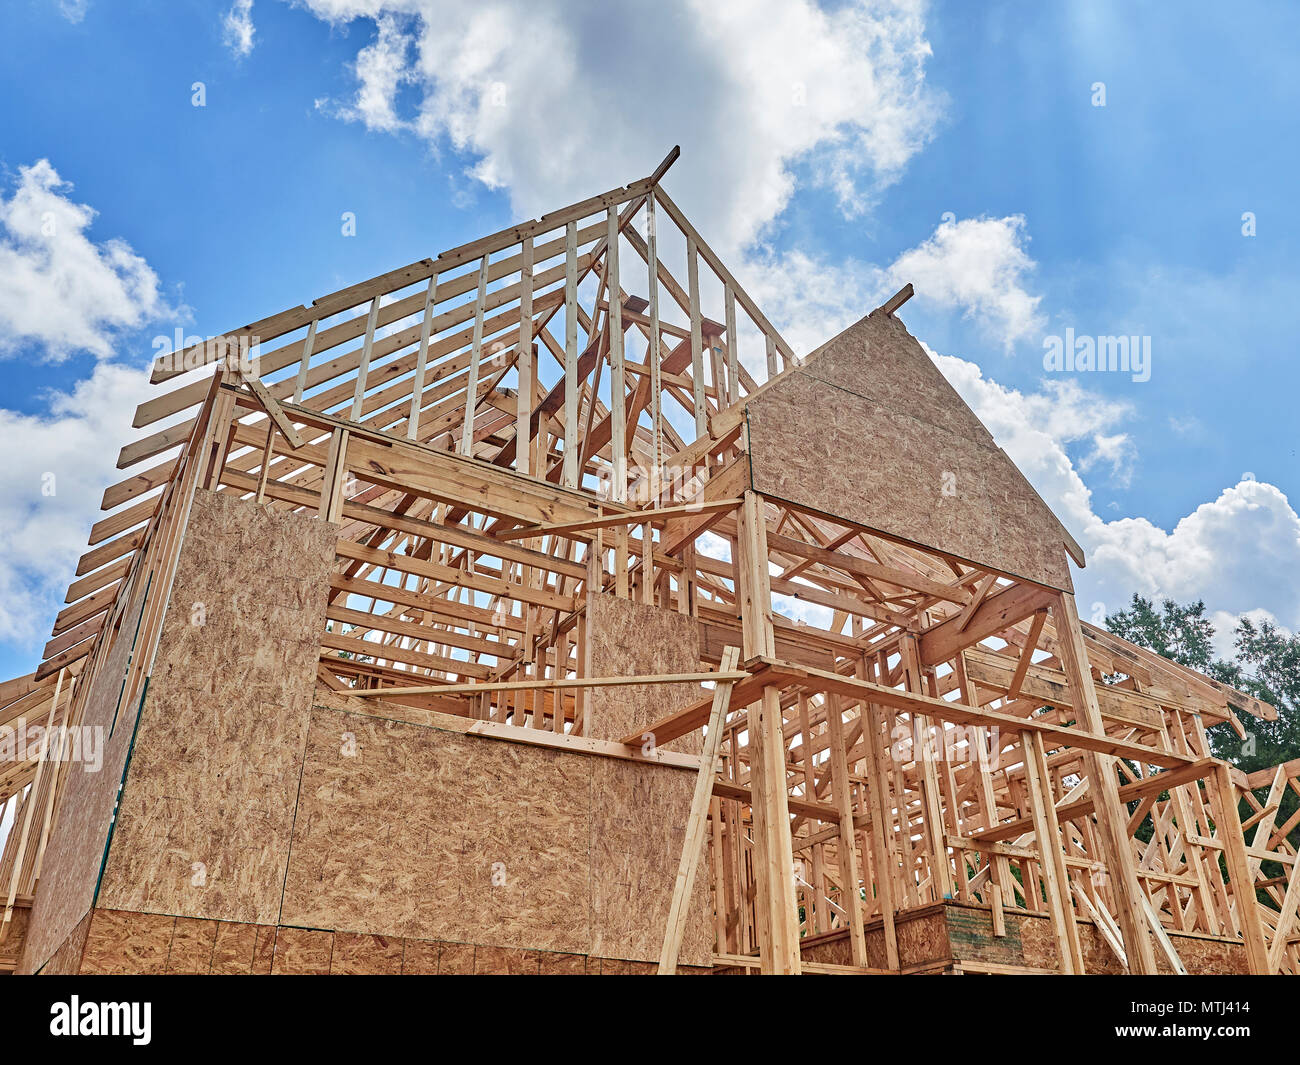 Exterior of framed residential house under construction in a subdivision in Montgomery Alabama, USA. Stock Photo